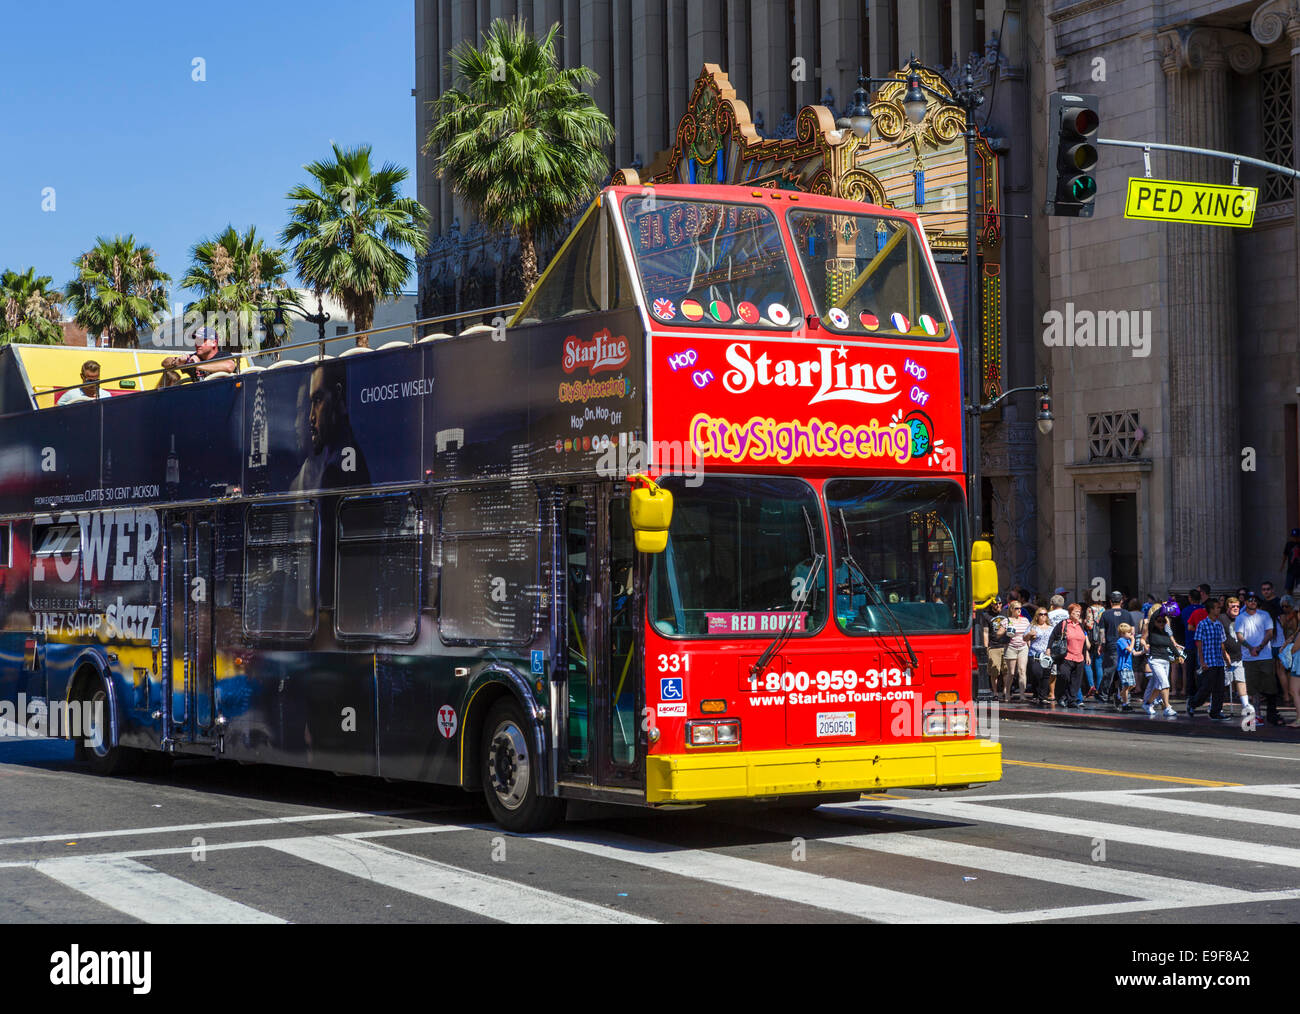 Official City Sightseeing tour of Los Angeles. Double Decker City Bus Tours Hop On Hop Off, Celebrity Stars Homes, Theme Parks and more.